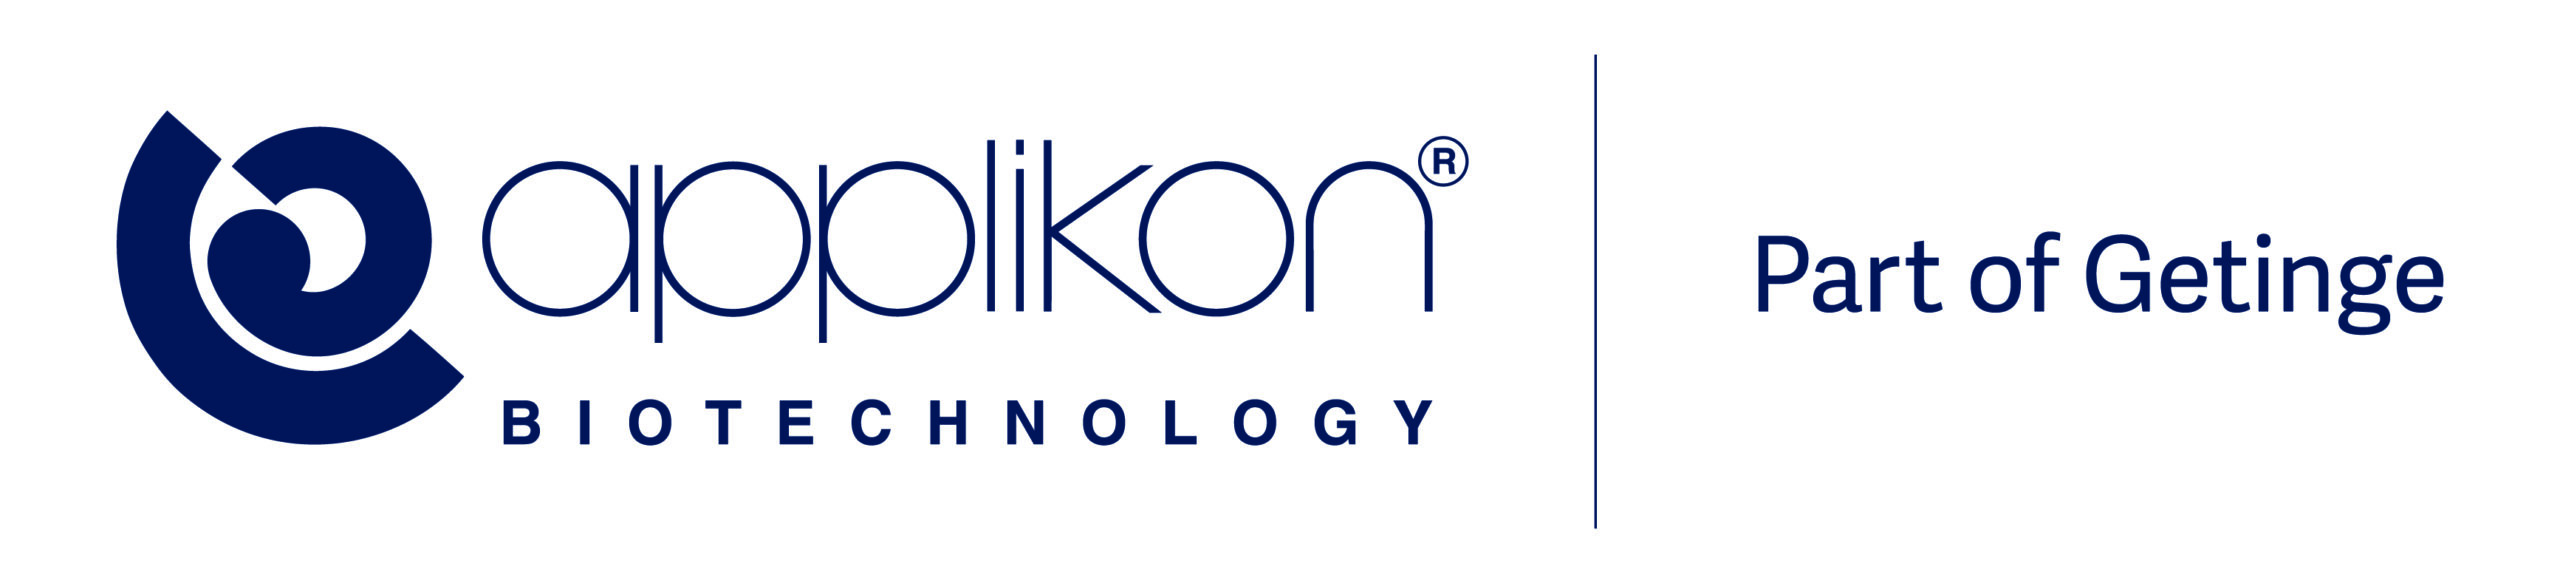 Applikon Biotechnology collaborating with Emerson in OEM digital transformation program